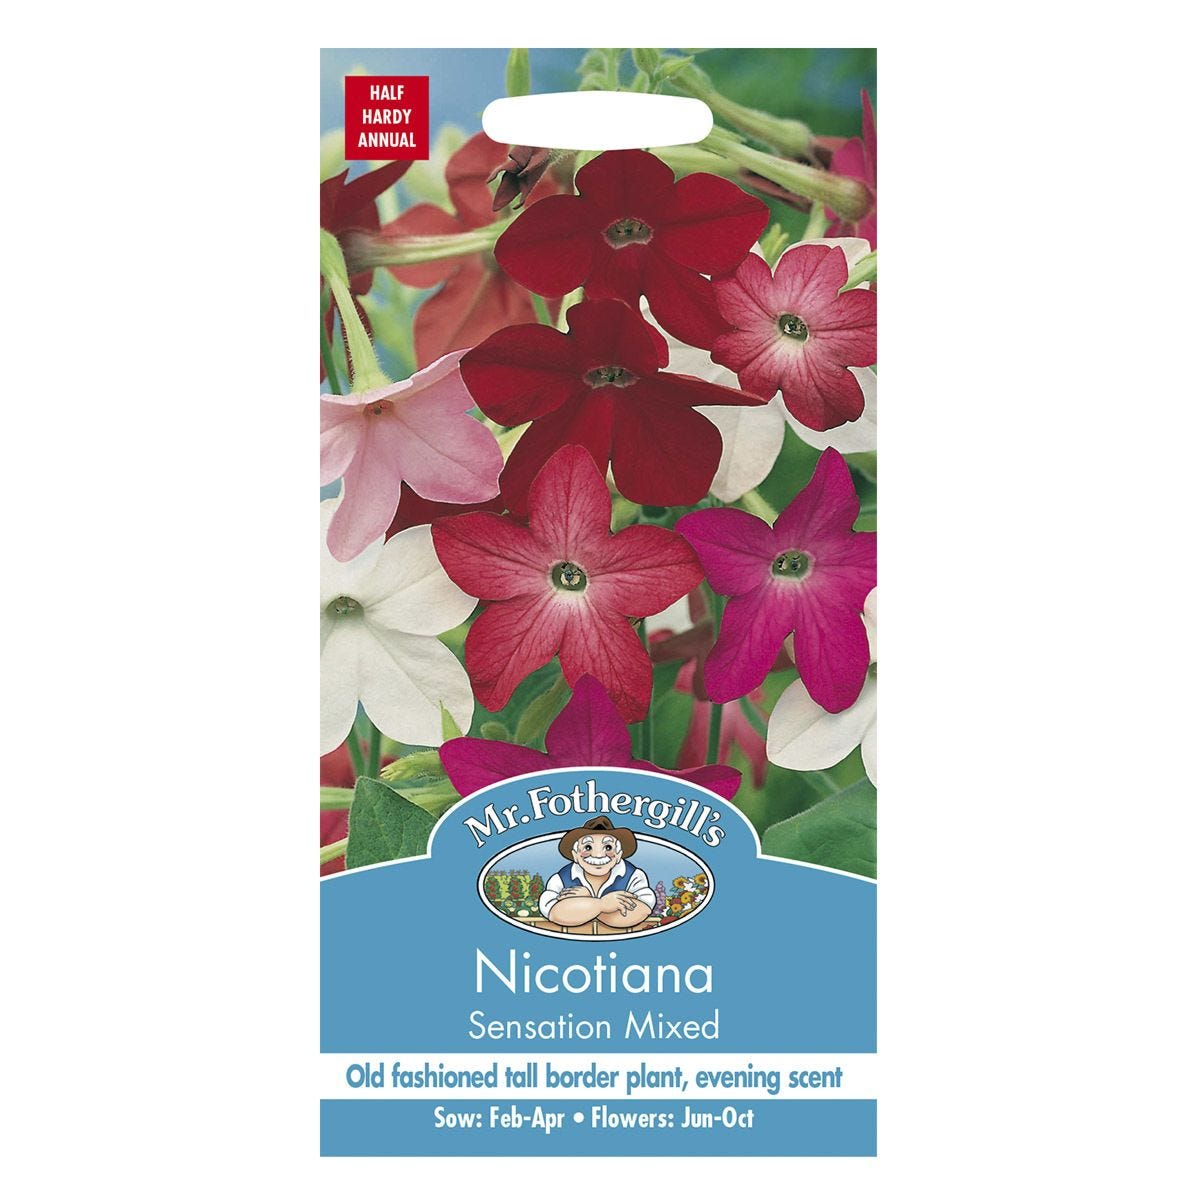 Mr Fothergill's Nicotiana Sensation Mixed Seeds